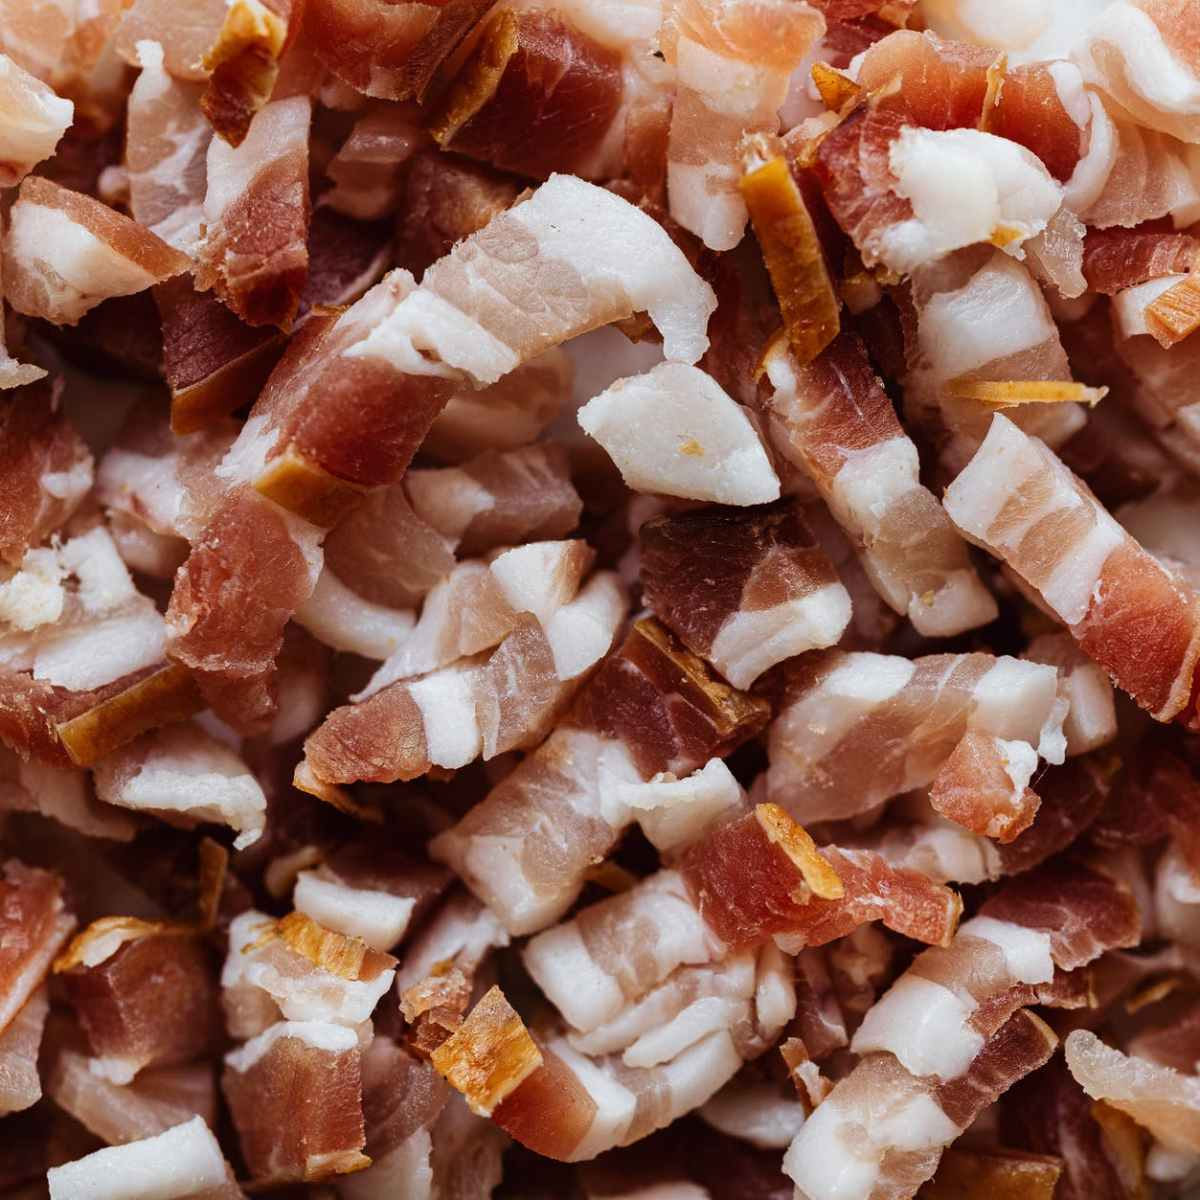 why fatFIRE - A heap of bacon cut into small slices